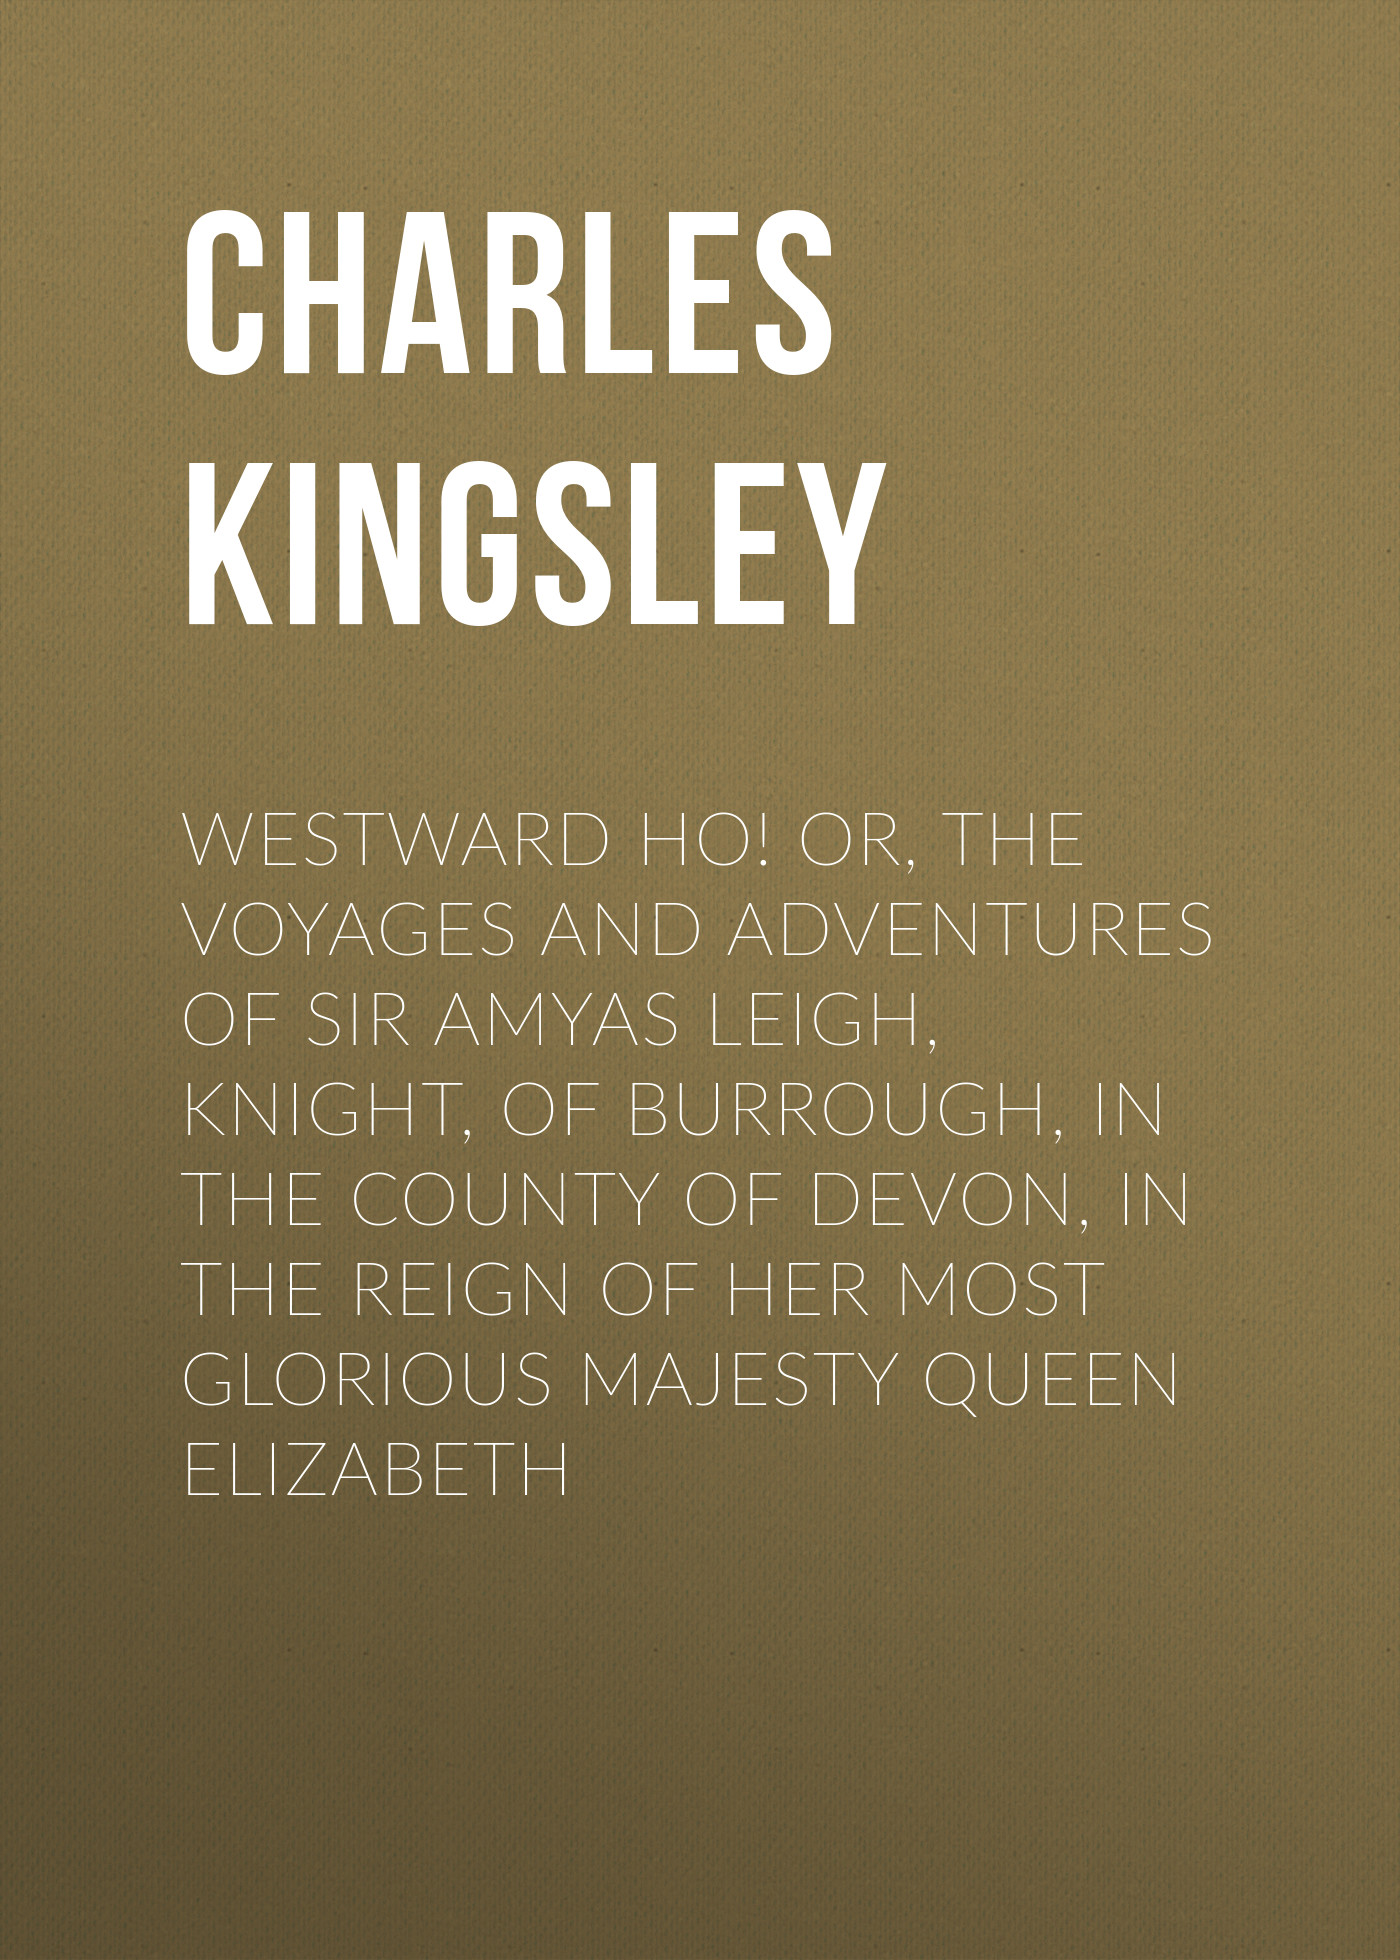 Charles Kingsley Westward Ho! Or, The Voyages and Adventures of Sir Amyas Leigh, Knight, of Burrough, in the County of Devon, in the Reign of Her Most Glorious Majesty Queen Elizabeth charles kingsley the roman and the teuton